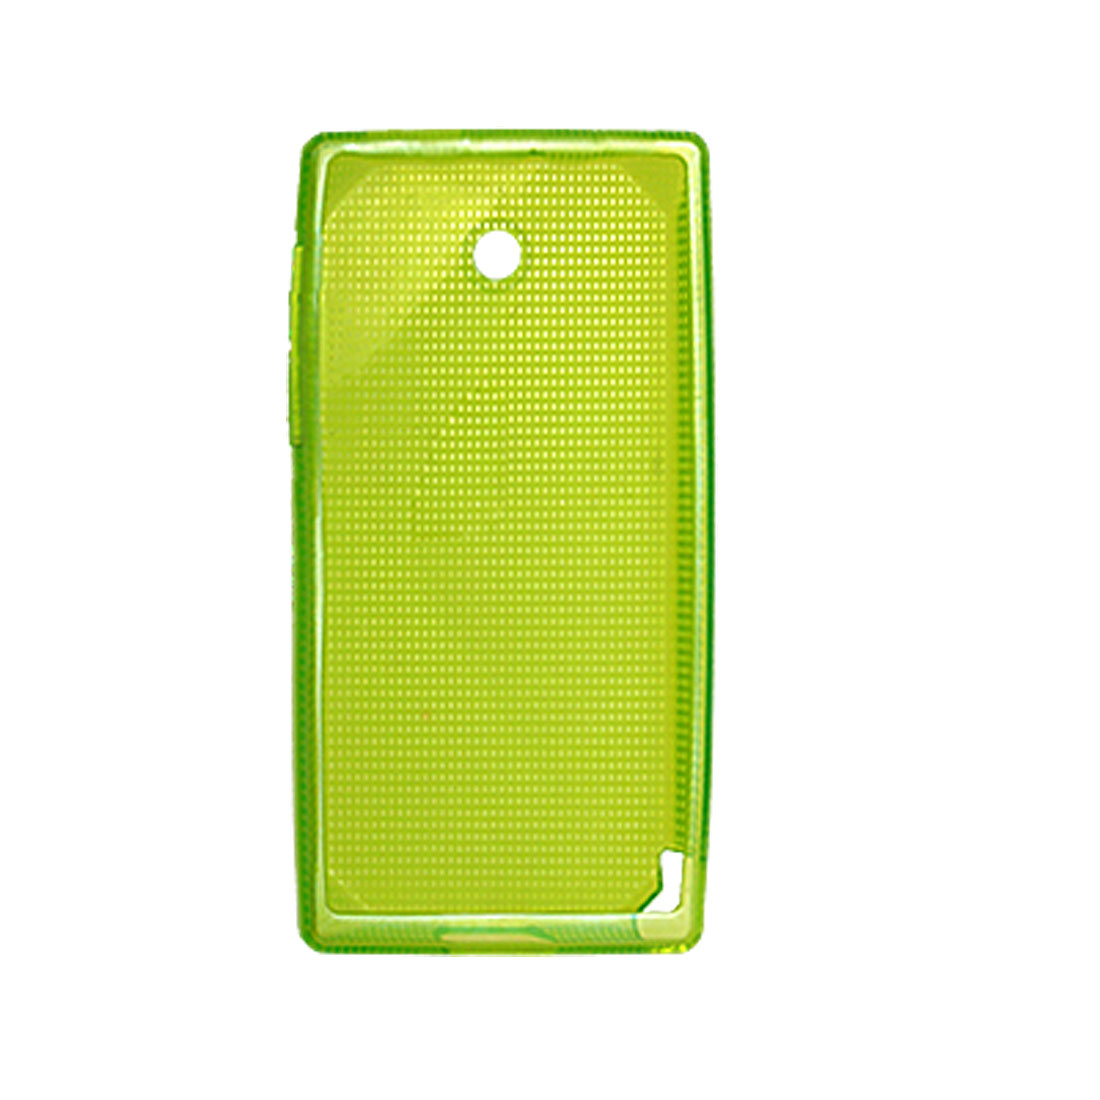 Kelly Protective Case Soft Plastic Cover Guard for HTC Diamond